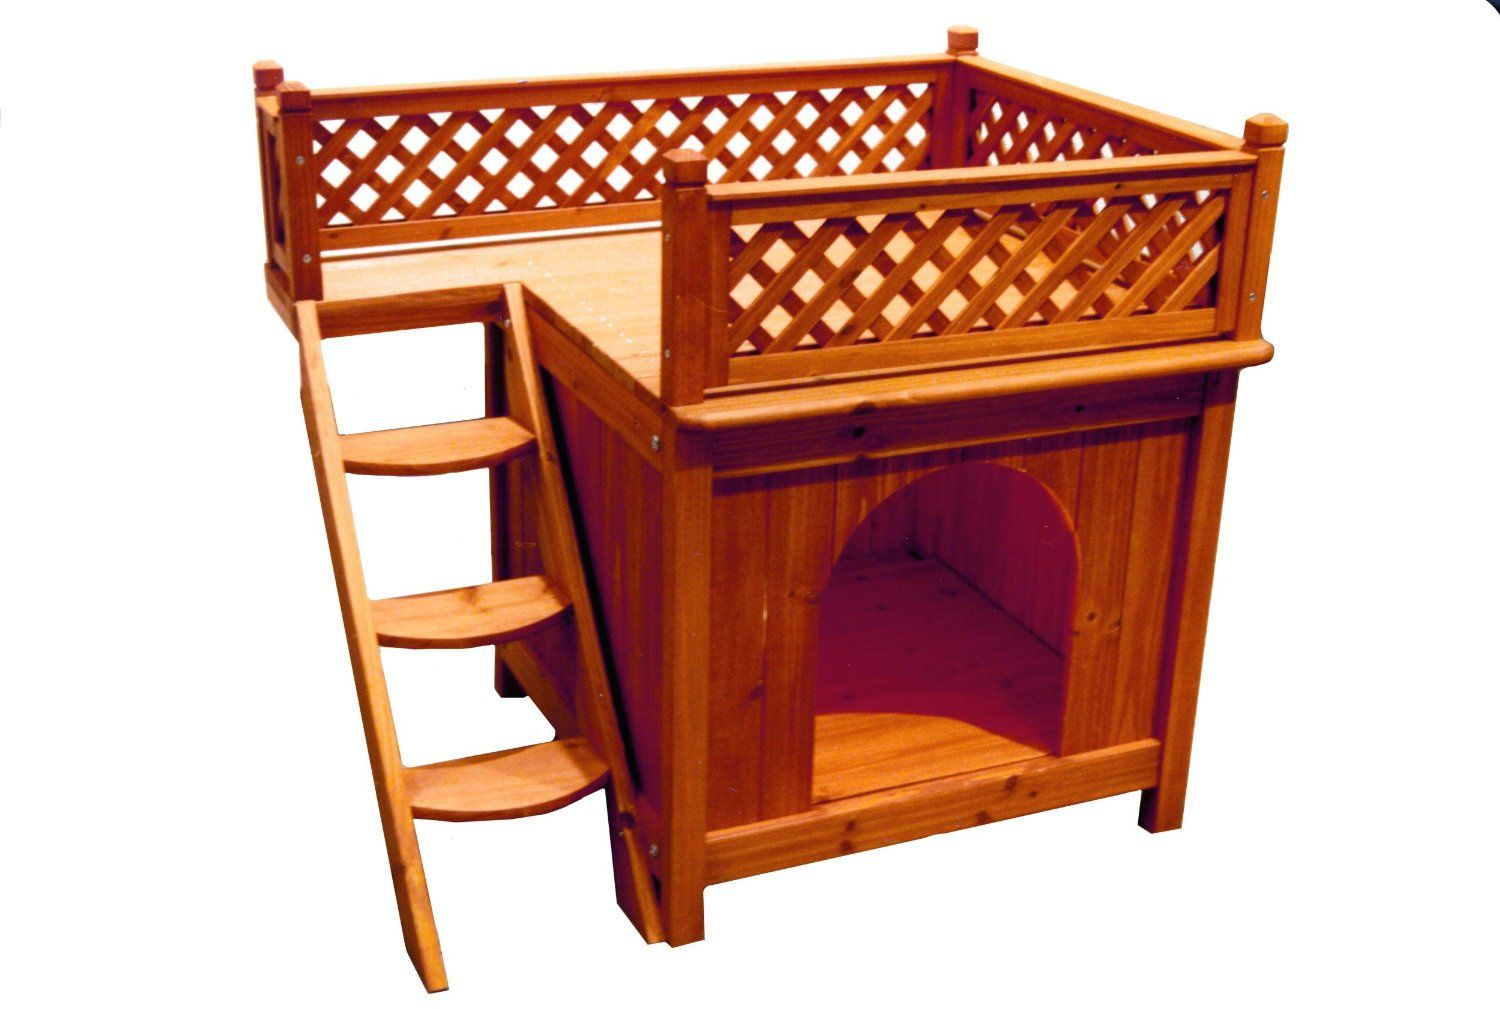 Dog beds that look like furniture | Wooden dog house, Wood ...